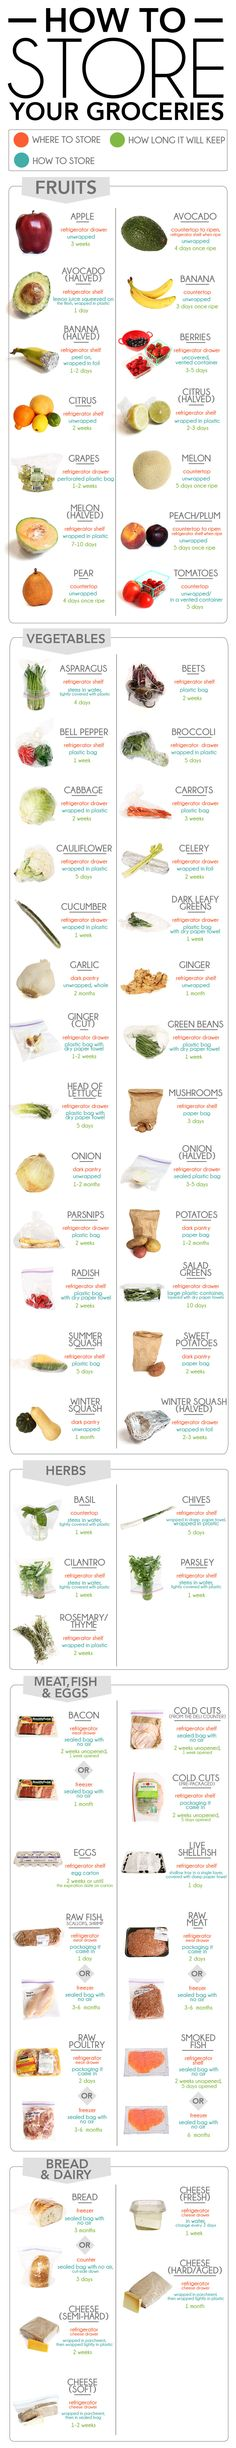 For how to store all your healthy foods. Not exactly cooking tips but it is food info. Healthy Tips, Healthy Snacks, Healthy Recipes, Stay Healthy, Eating Healthy, Clean Recipes, Healthy Women, Healthy Fruits, How To Get Healthy